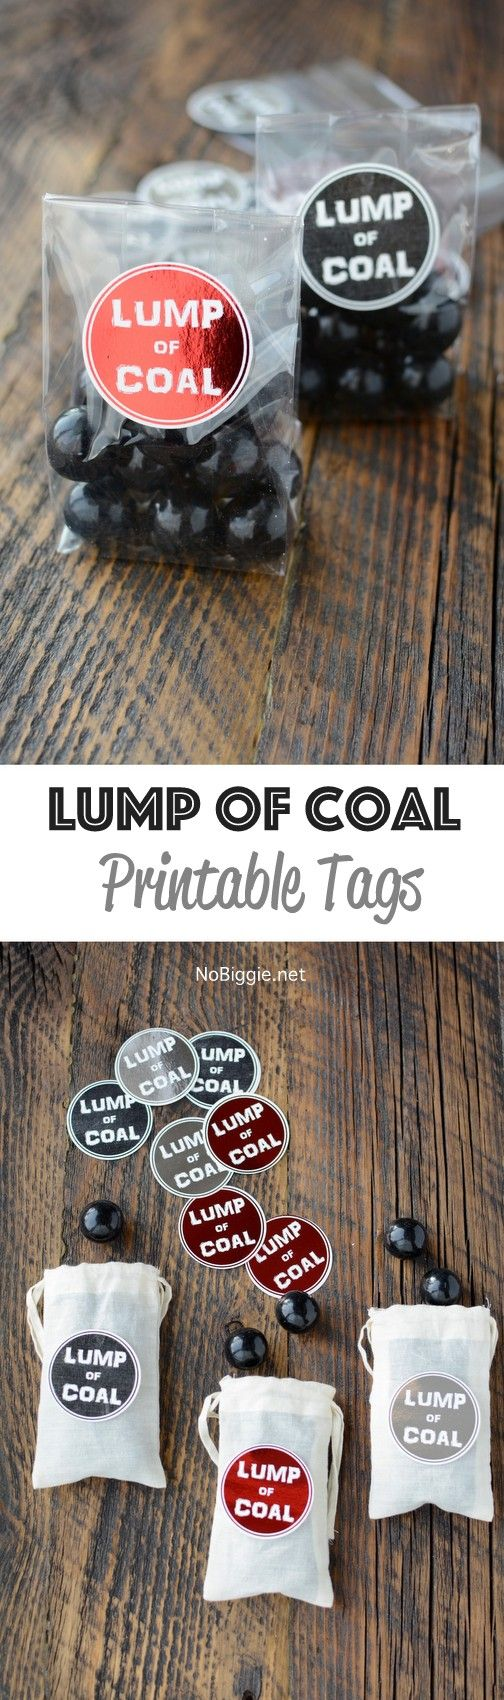 Lump Of Coal Printable Tags Gift Tags Printable Printable Tags